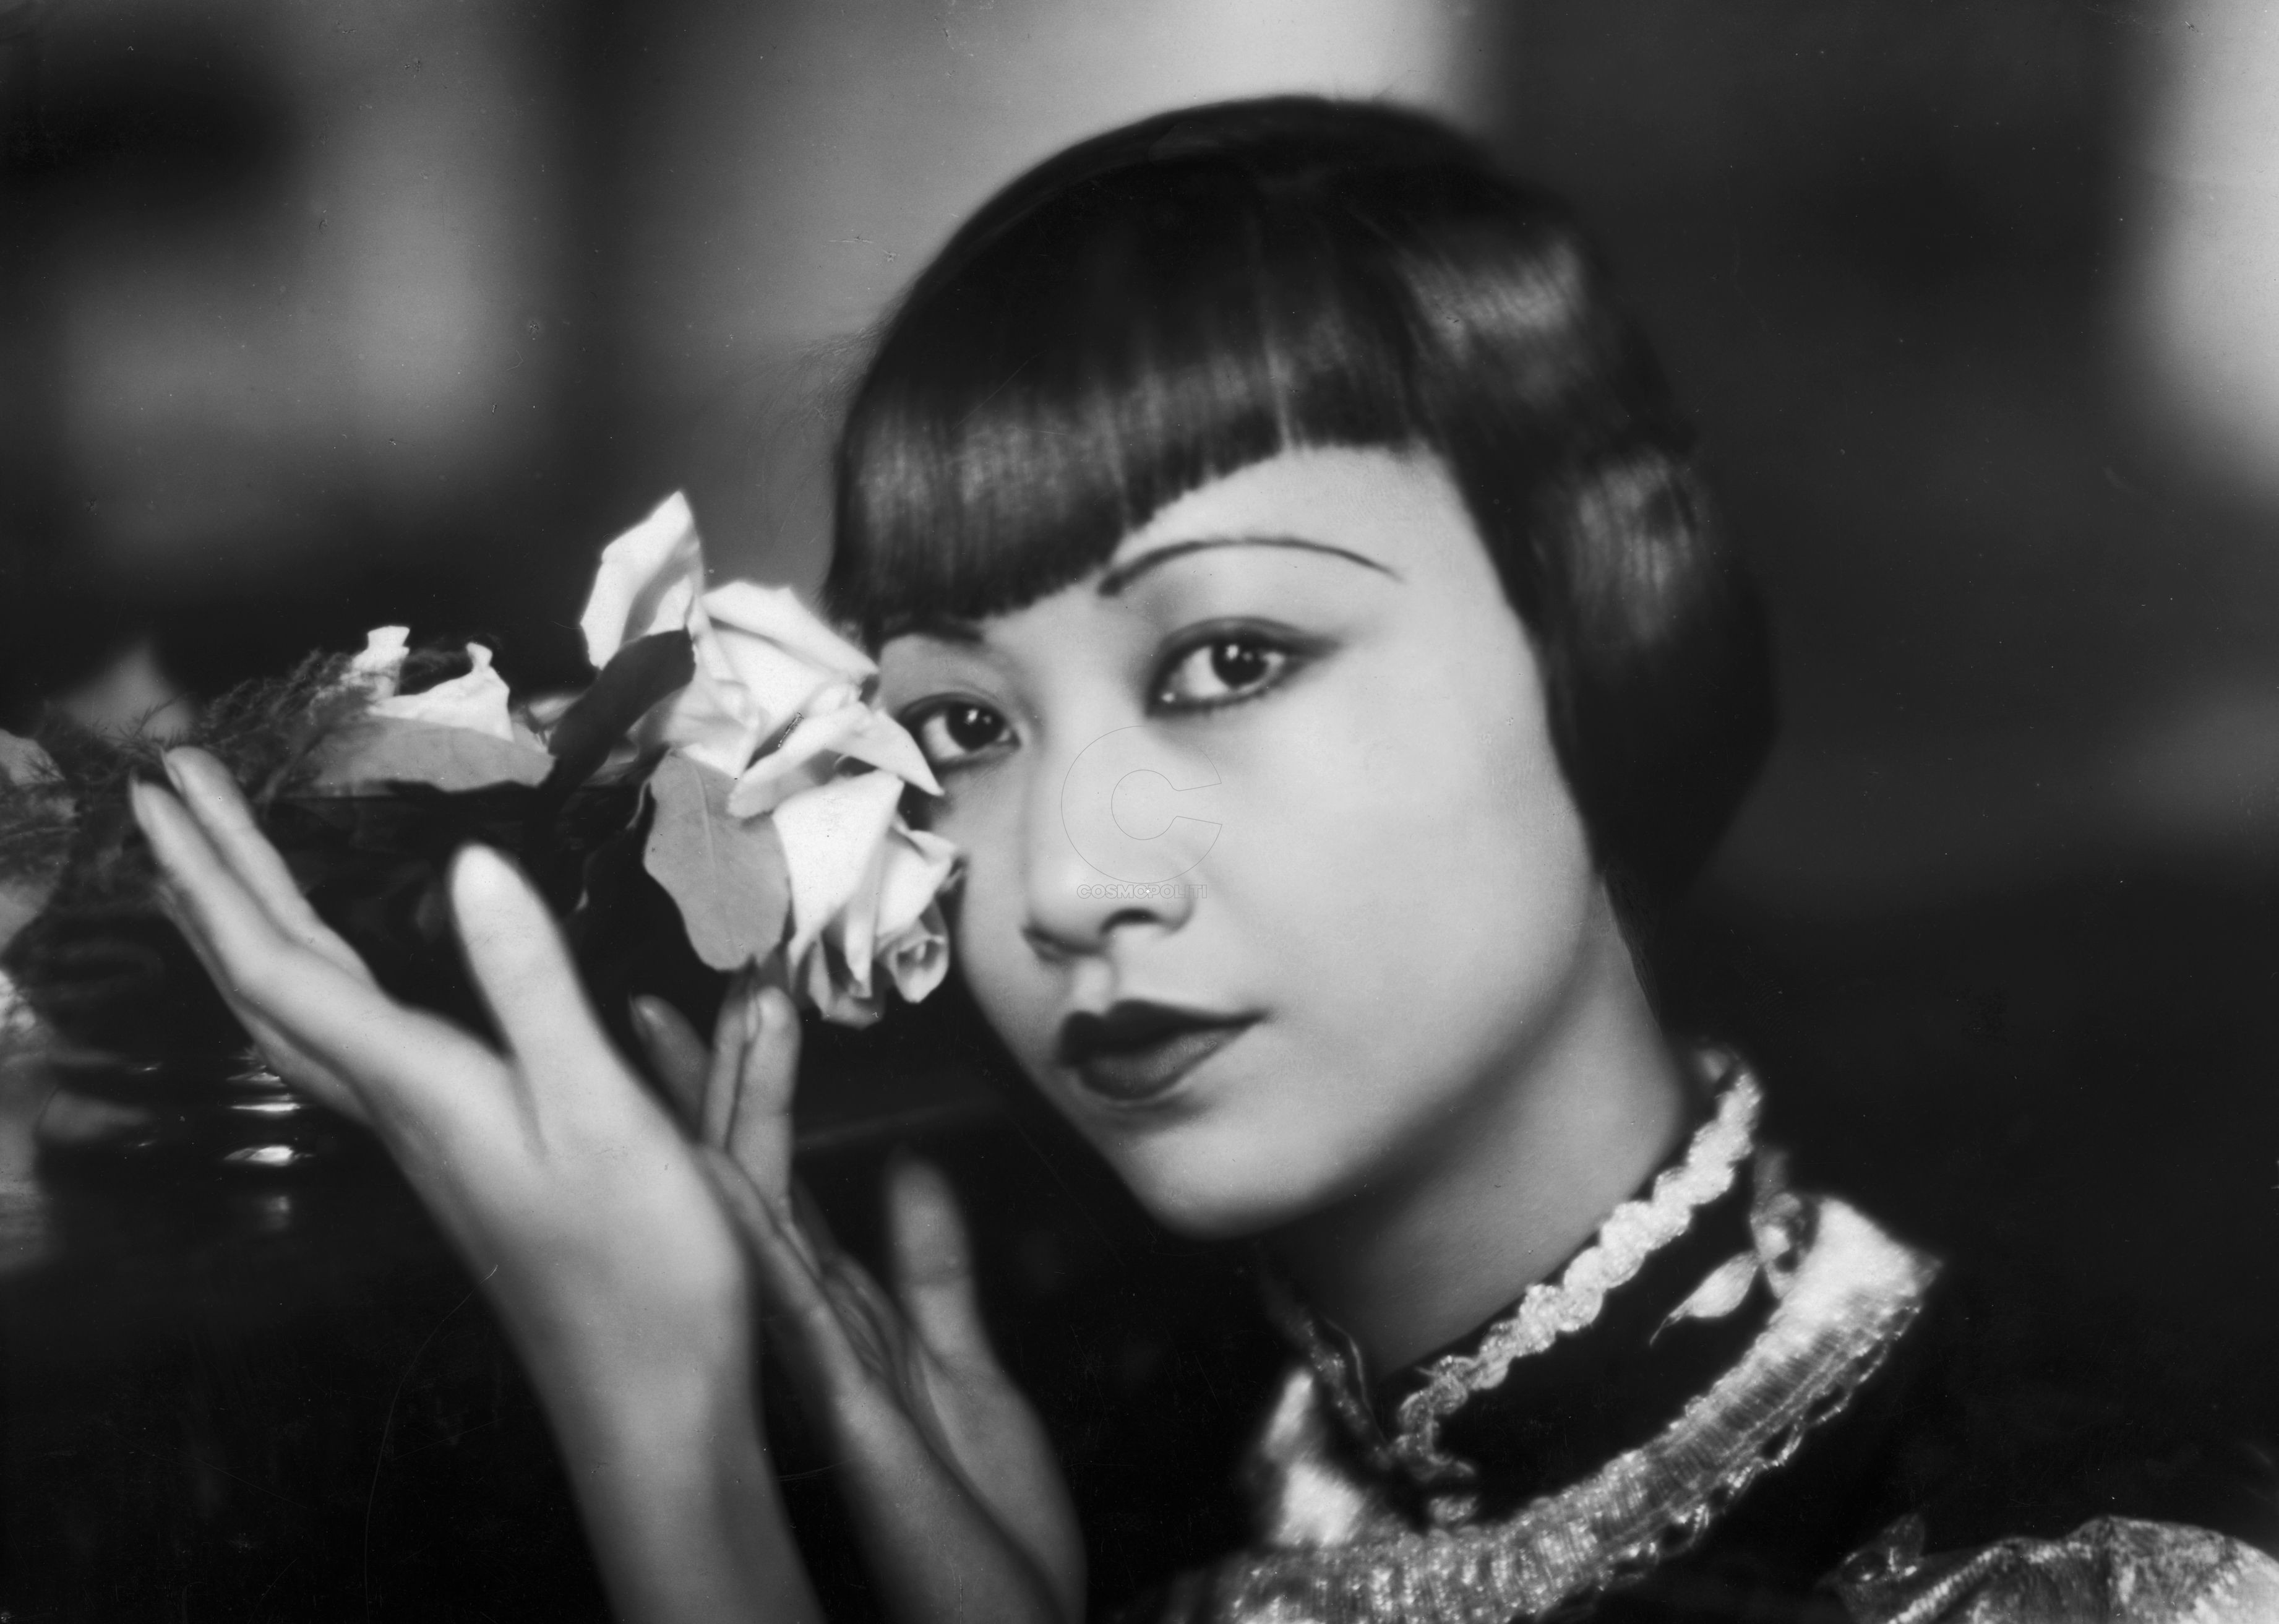 american-film-star-anna-may-wong-poses-with-a-cut-rose-news-photo-1588260248